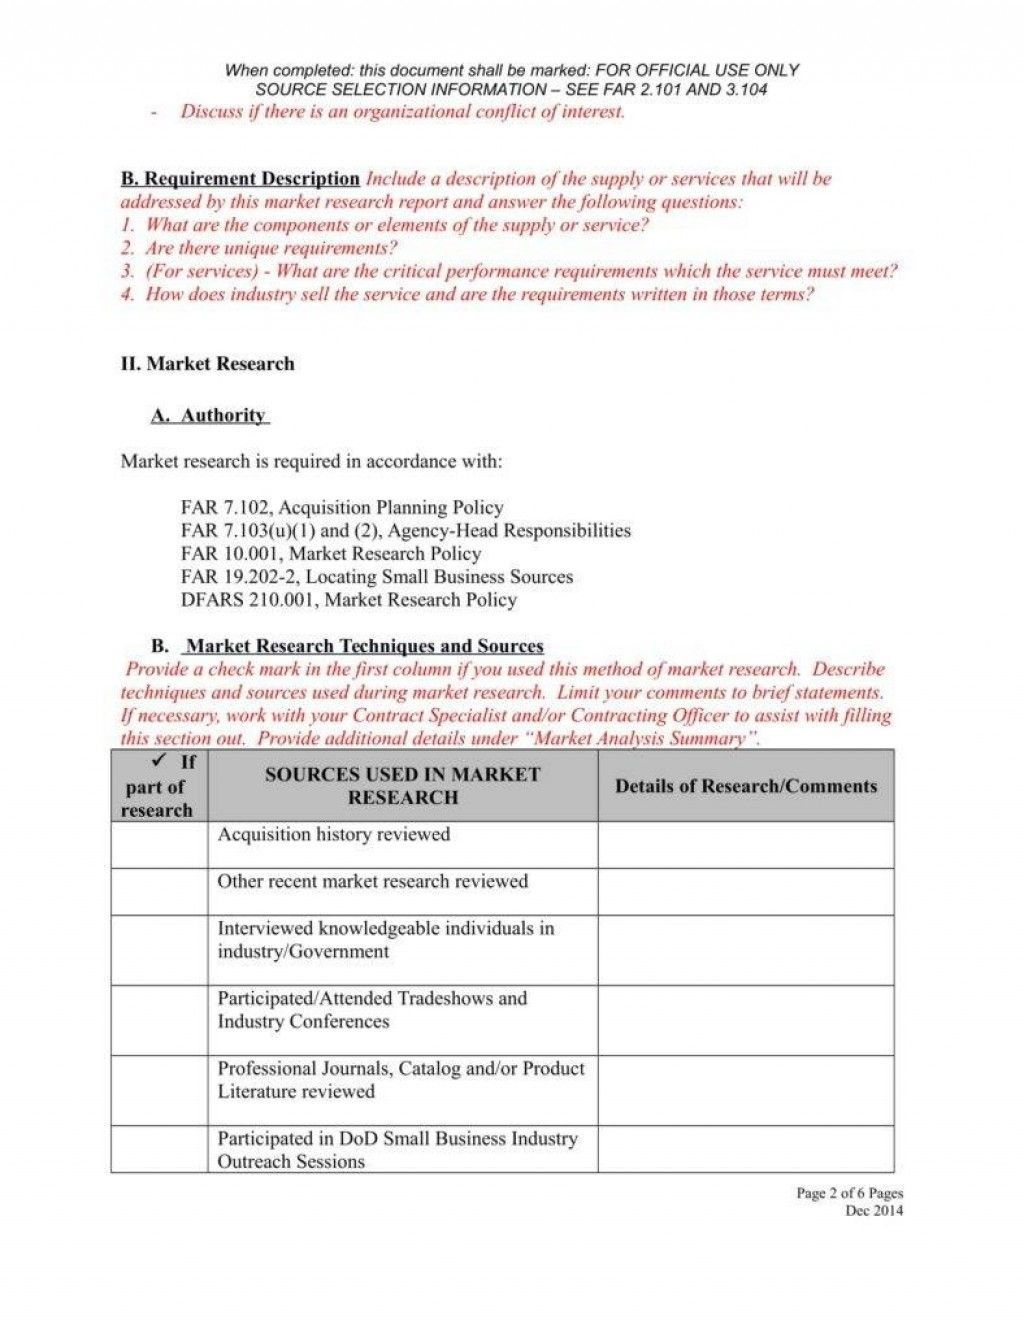 008 Shocking Market Research Report Template Image  Excel Sample FreeFull